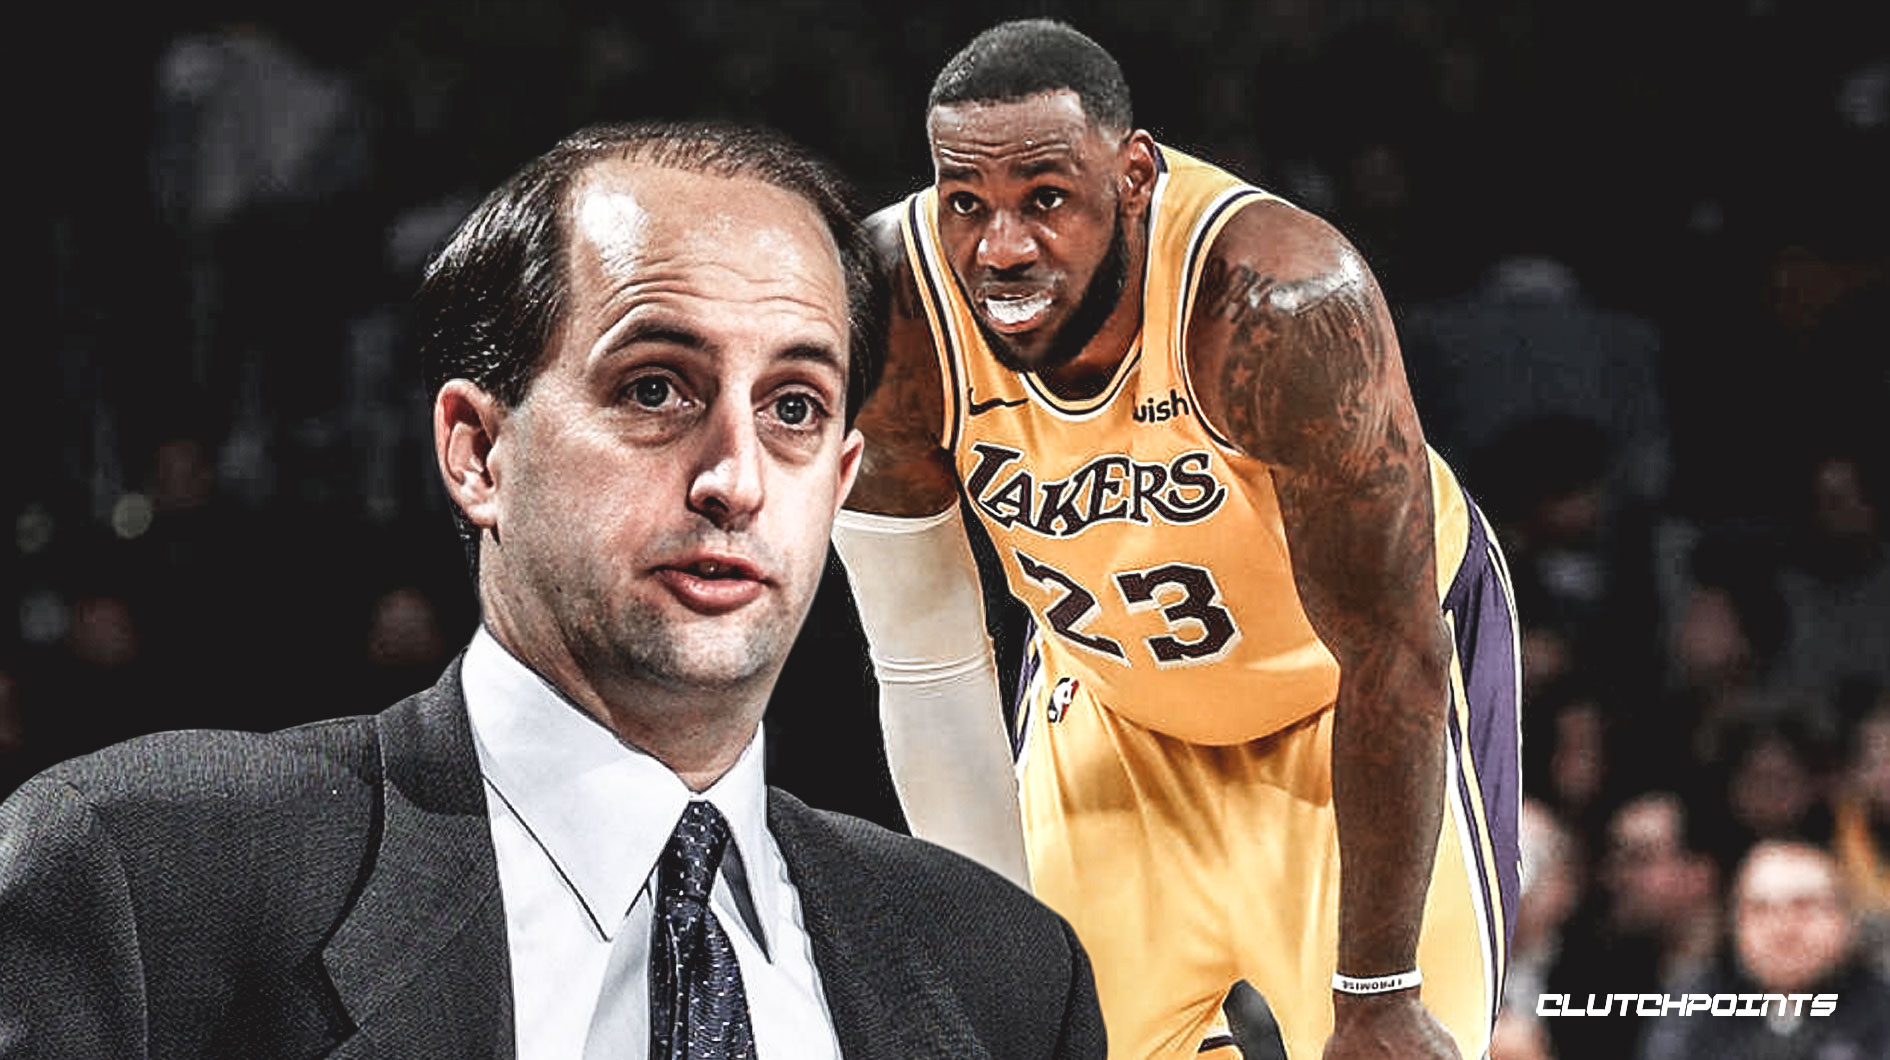 Jeff-Van-Gundy-suggests-LA-should-consider-trading-LeBron-James